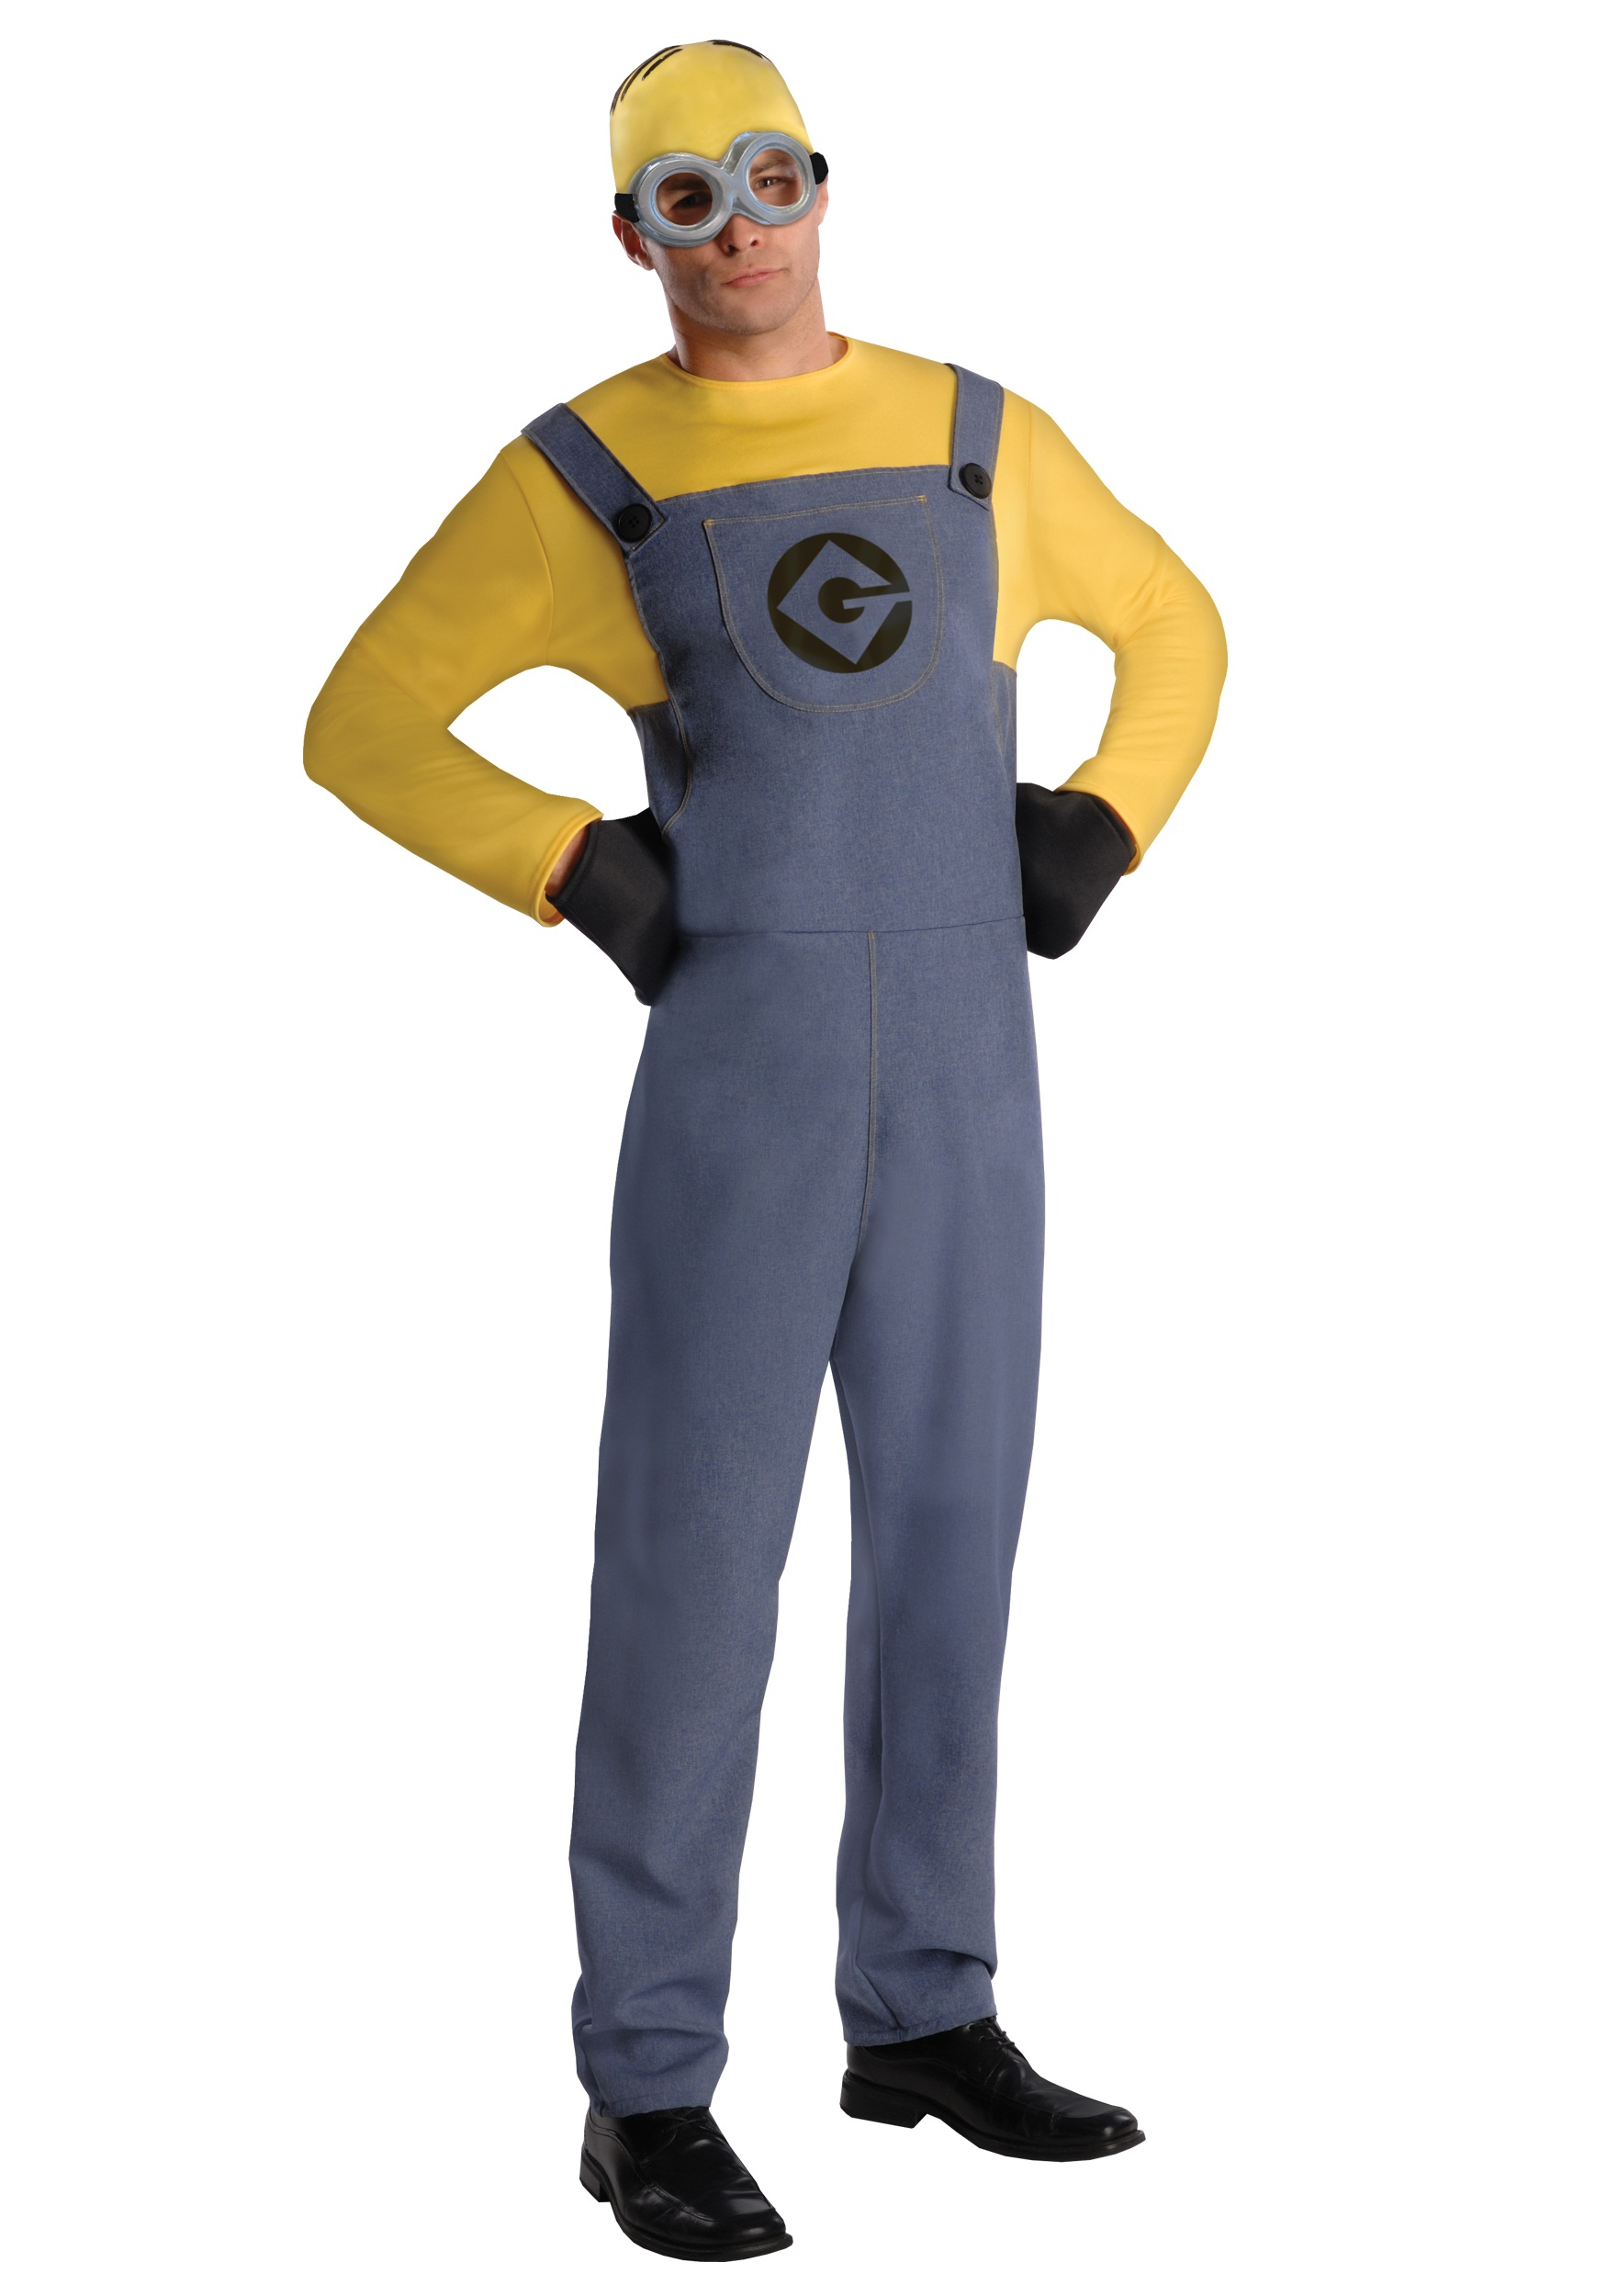 Adult Dave Minion Costume  sc 1 st  Halloween Costumes & Despicable Me Minion Costumes - HalloweenCostumes.com